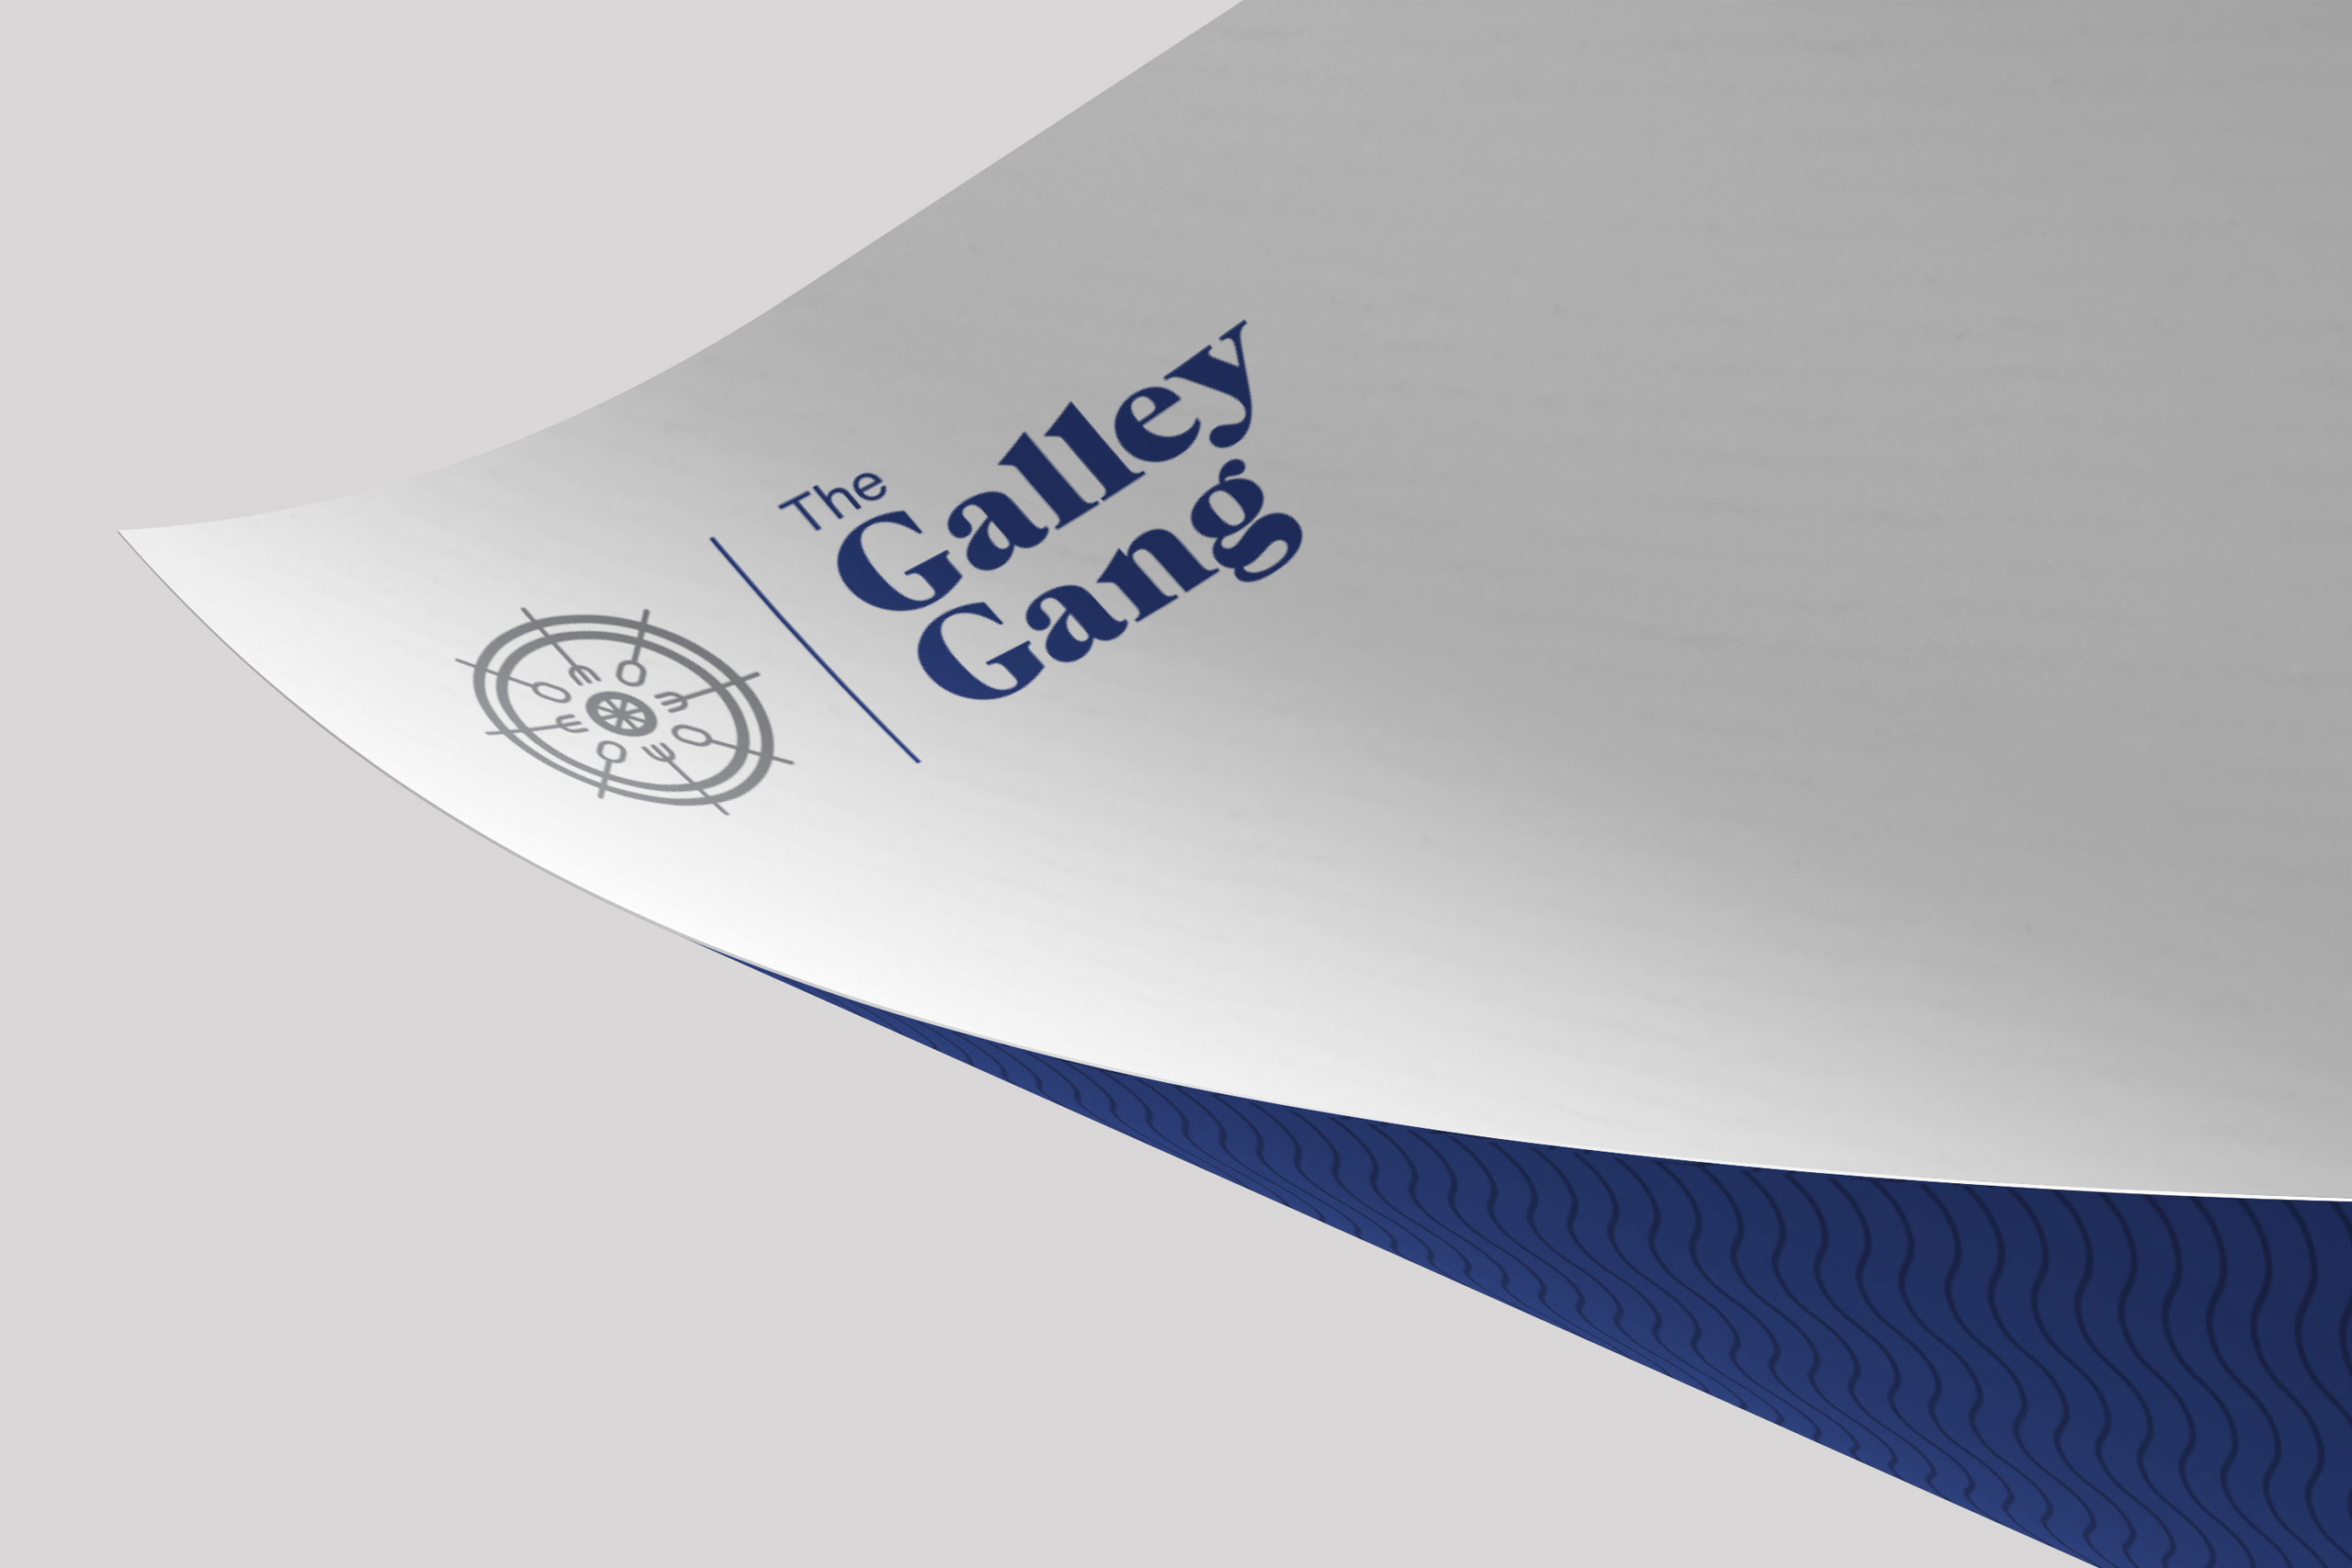 letterhead design galley gang